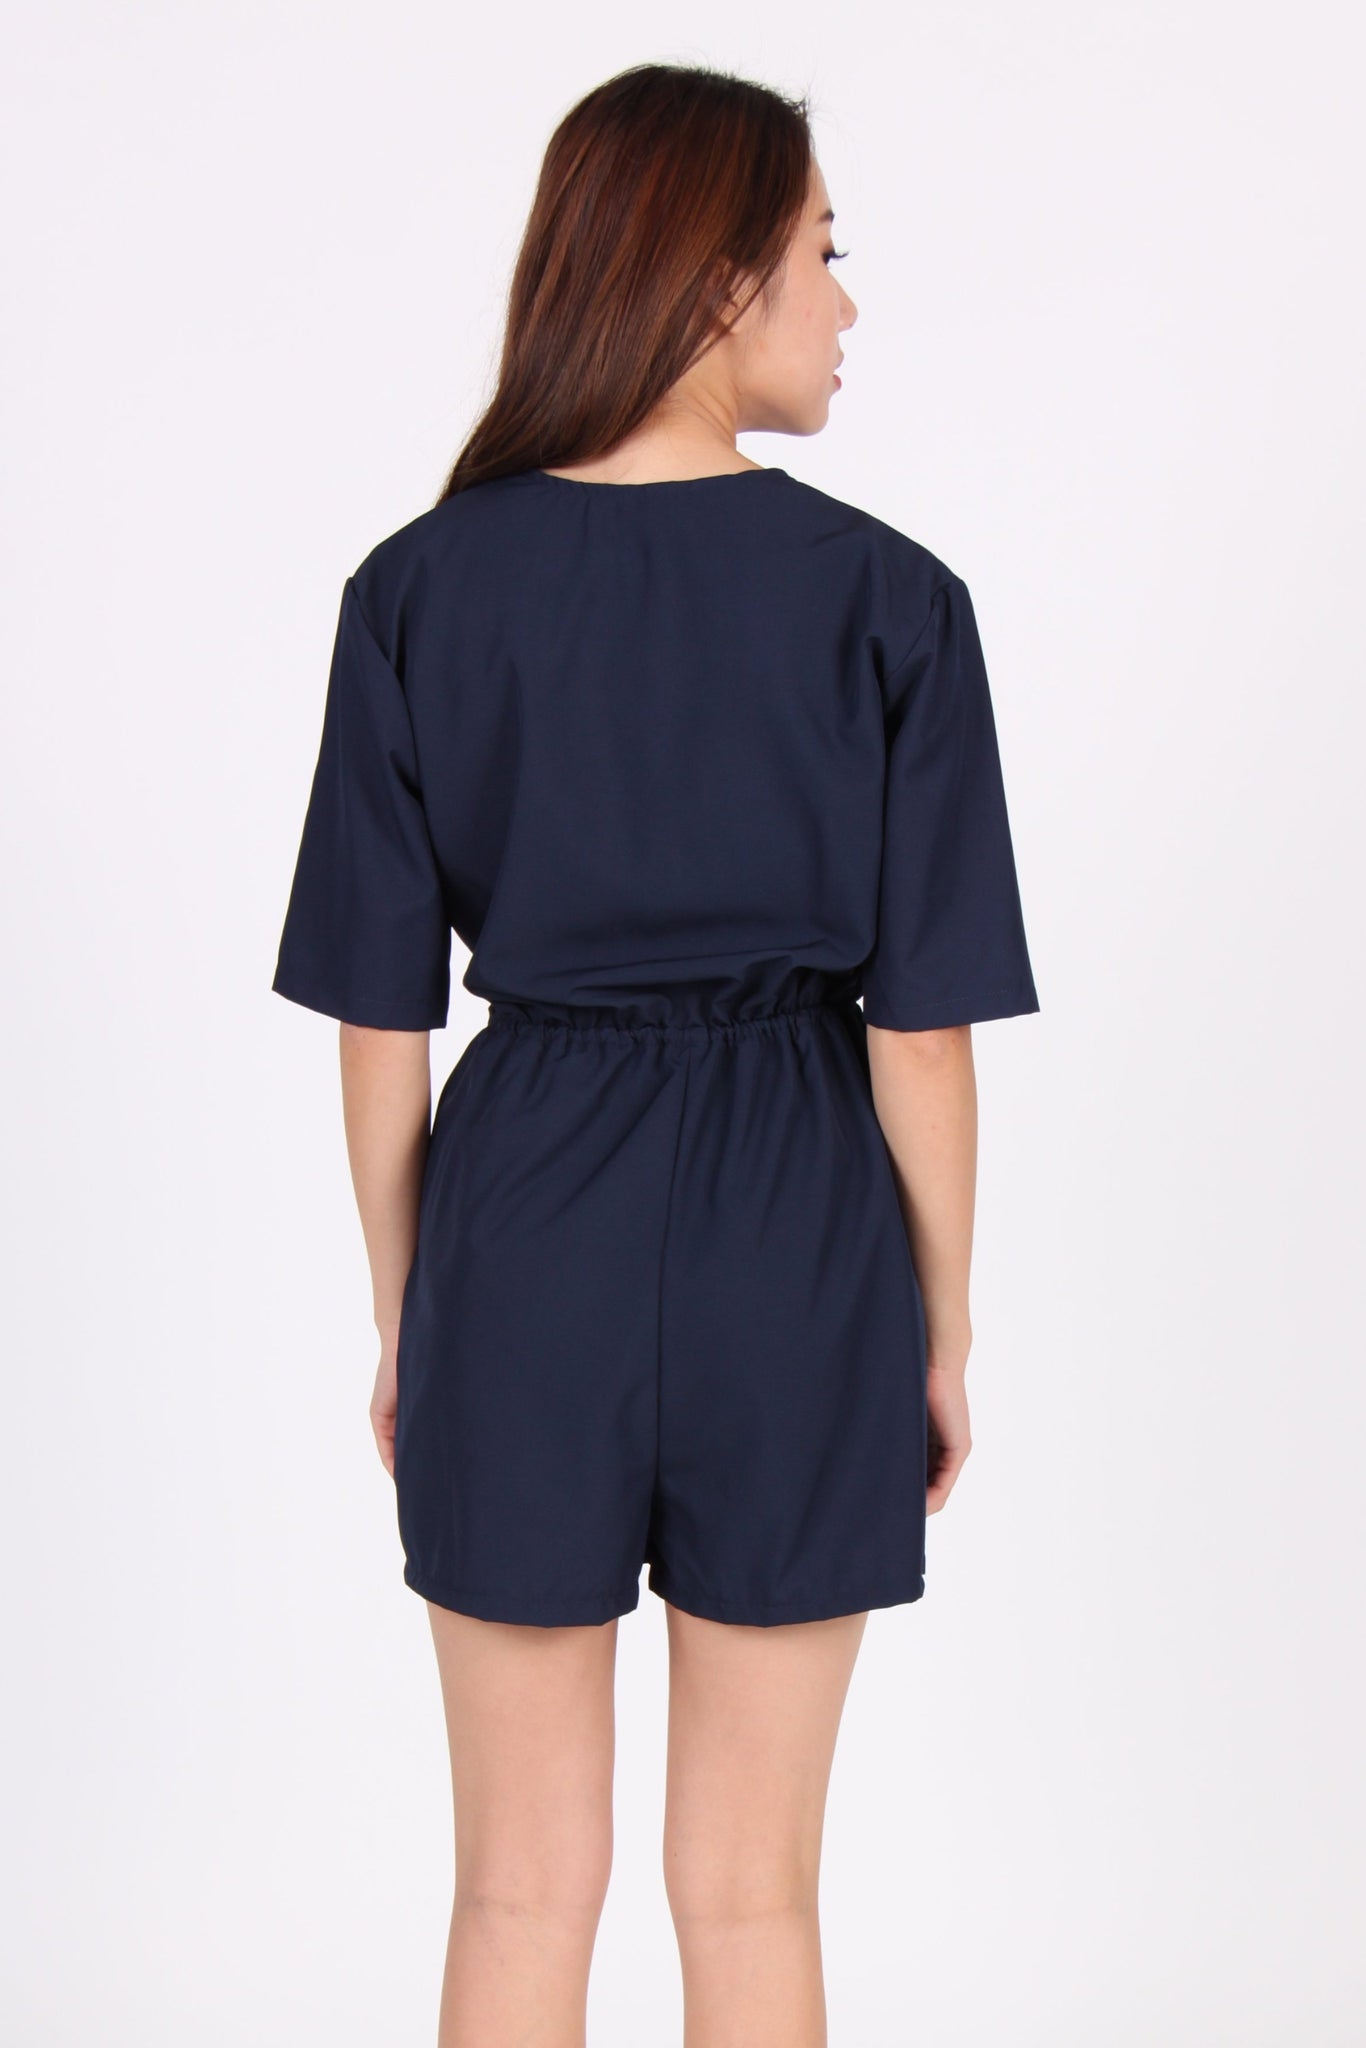 Sleeve Wrap Romper in Navy Blue